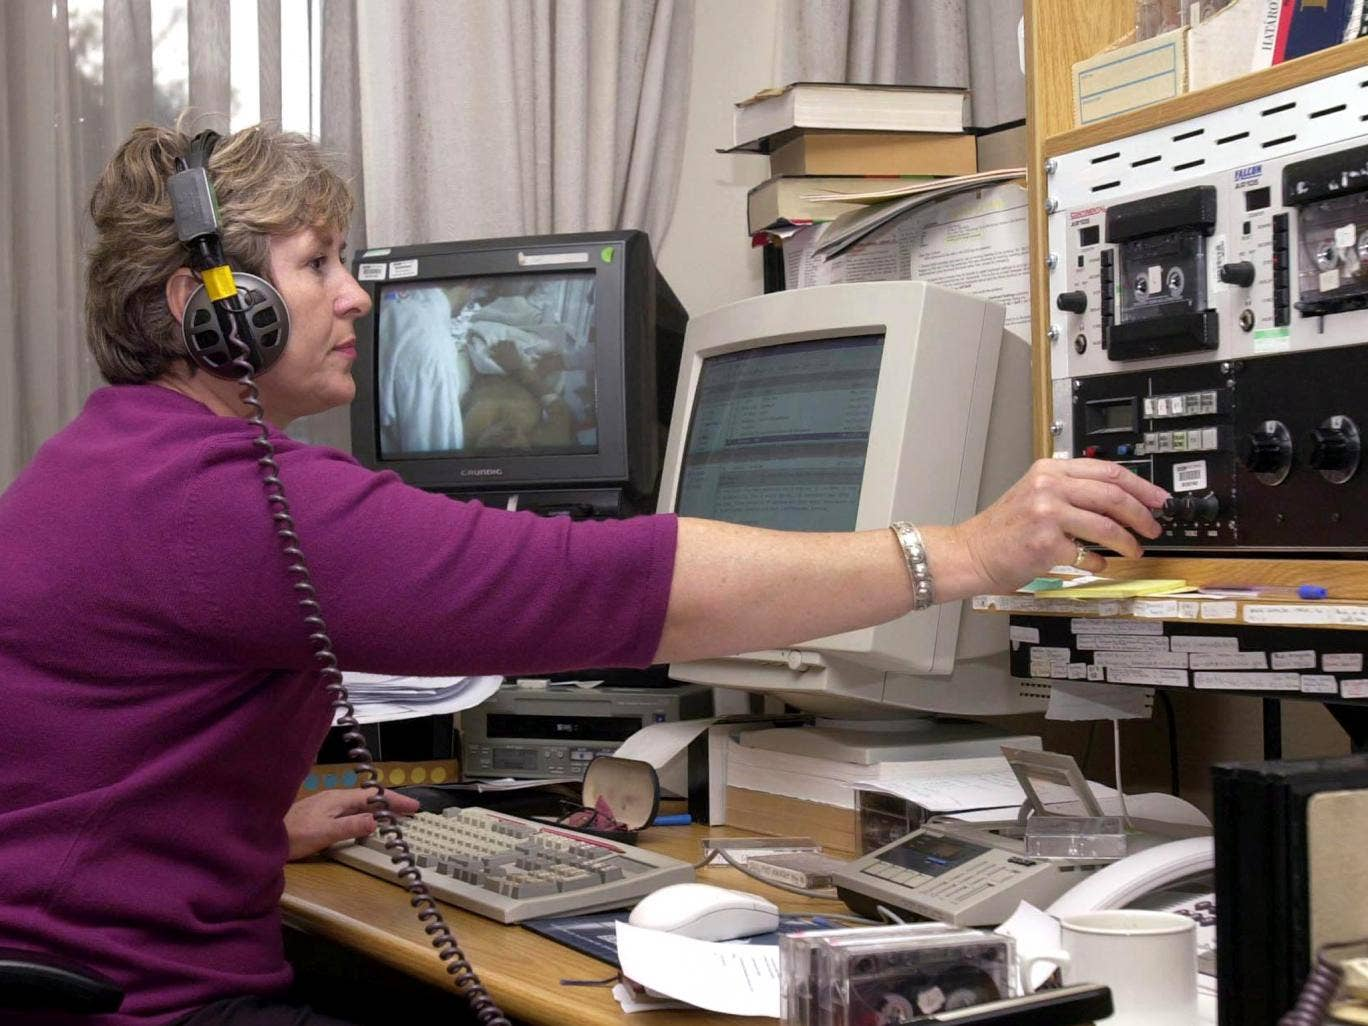 A BBC sub editor uses the old system at the BBC World Monitoring station, Caversham Park